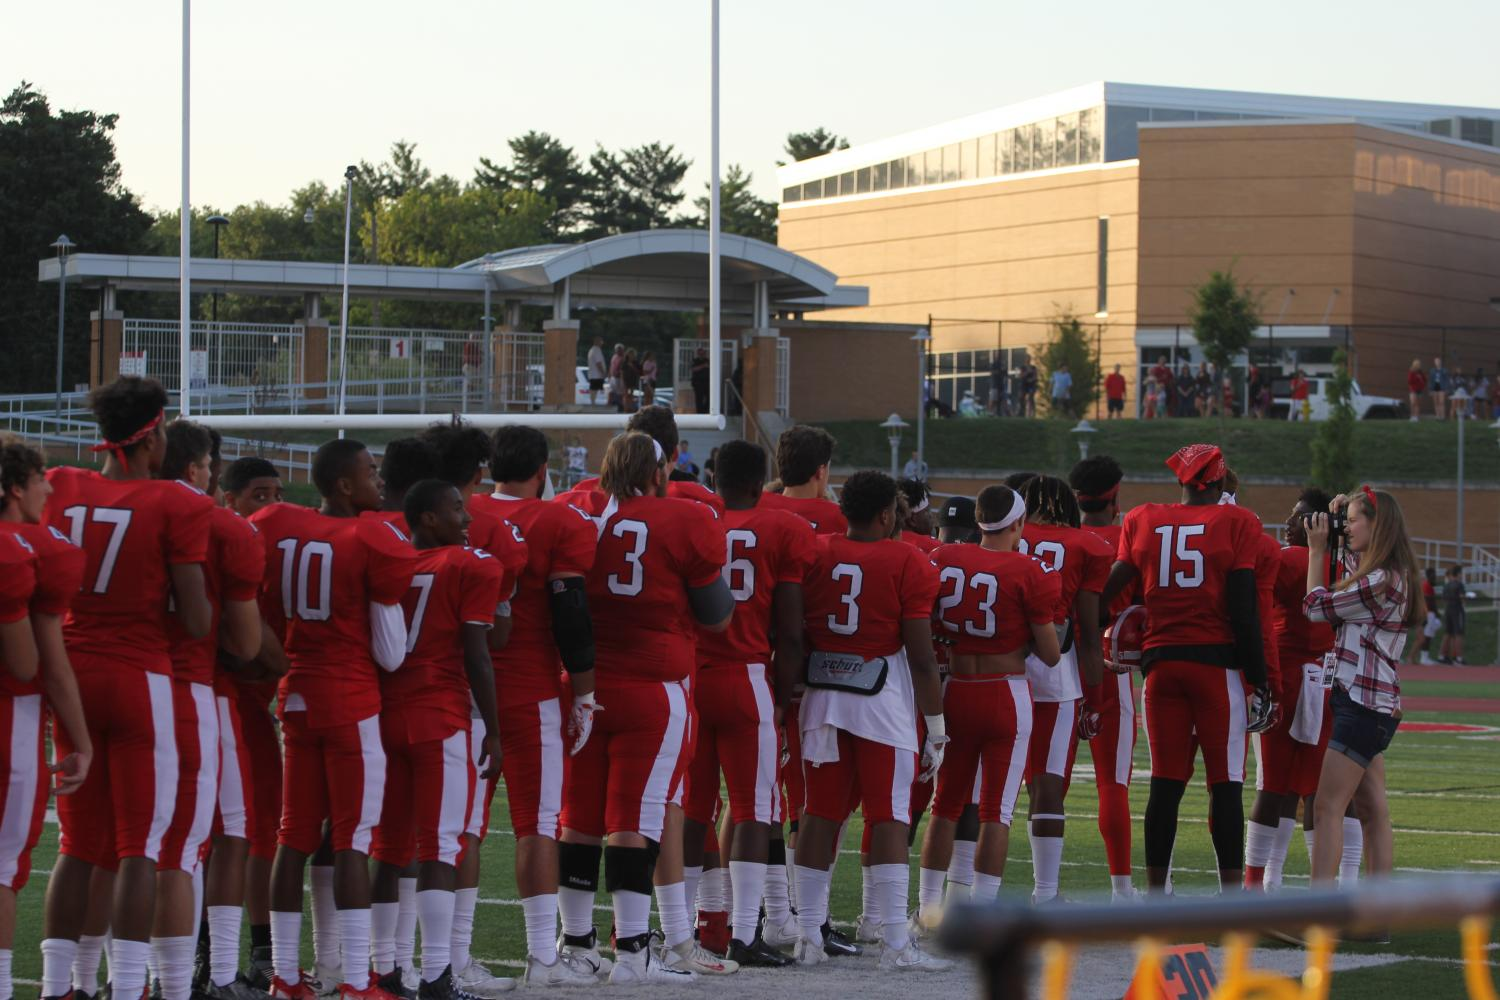 KHS+varsity+football+players+stand+for+the+National+Anthem+before+the+game+begins.